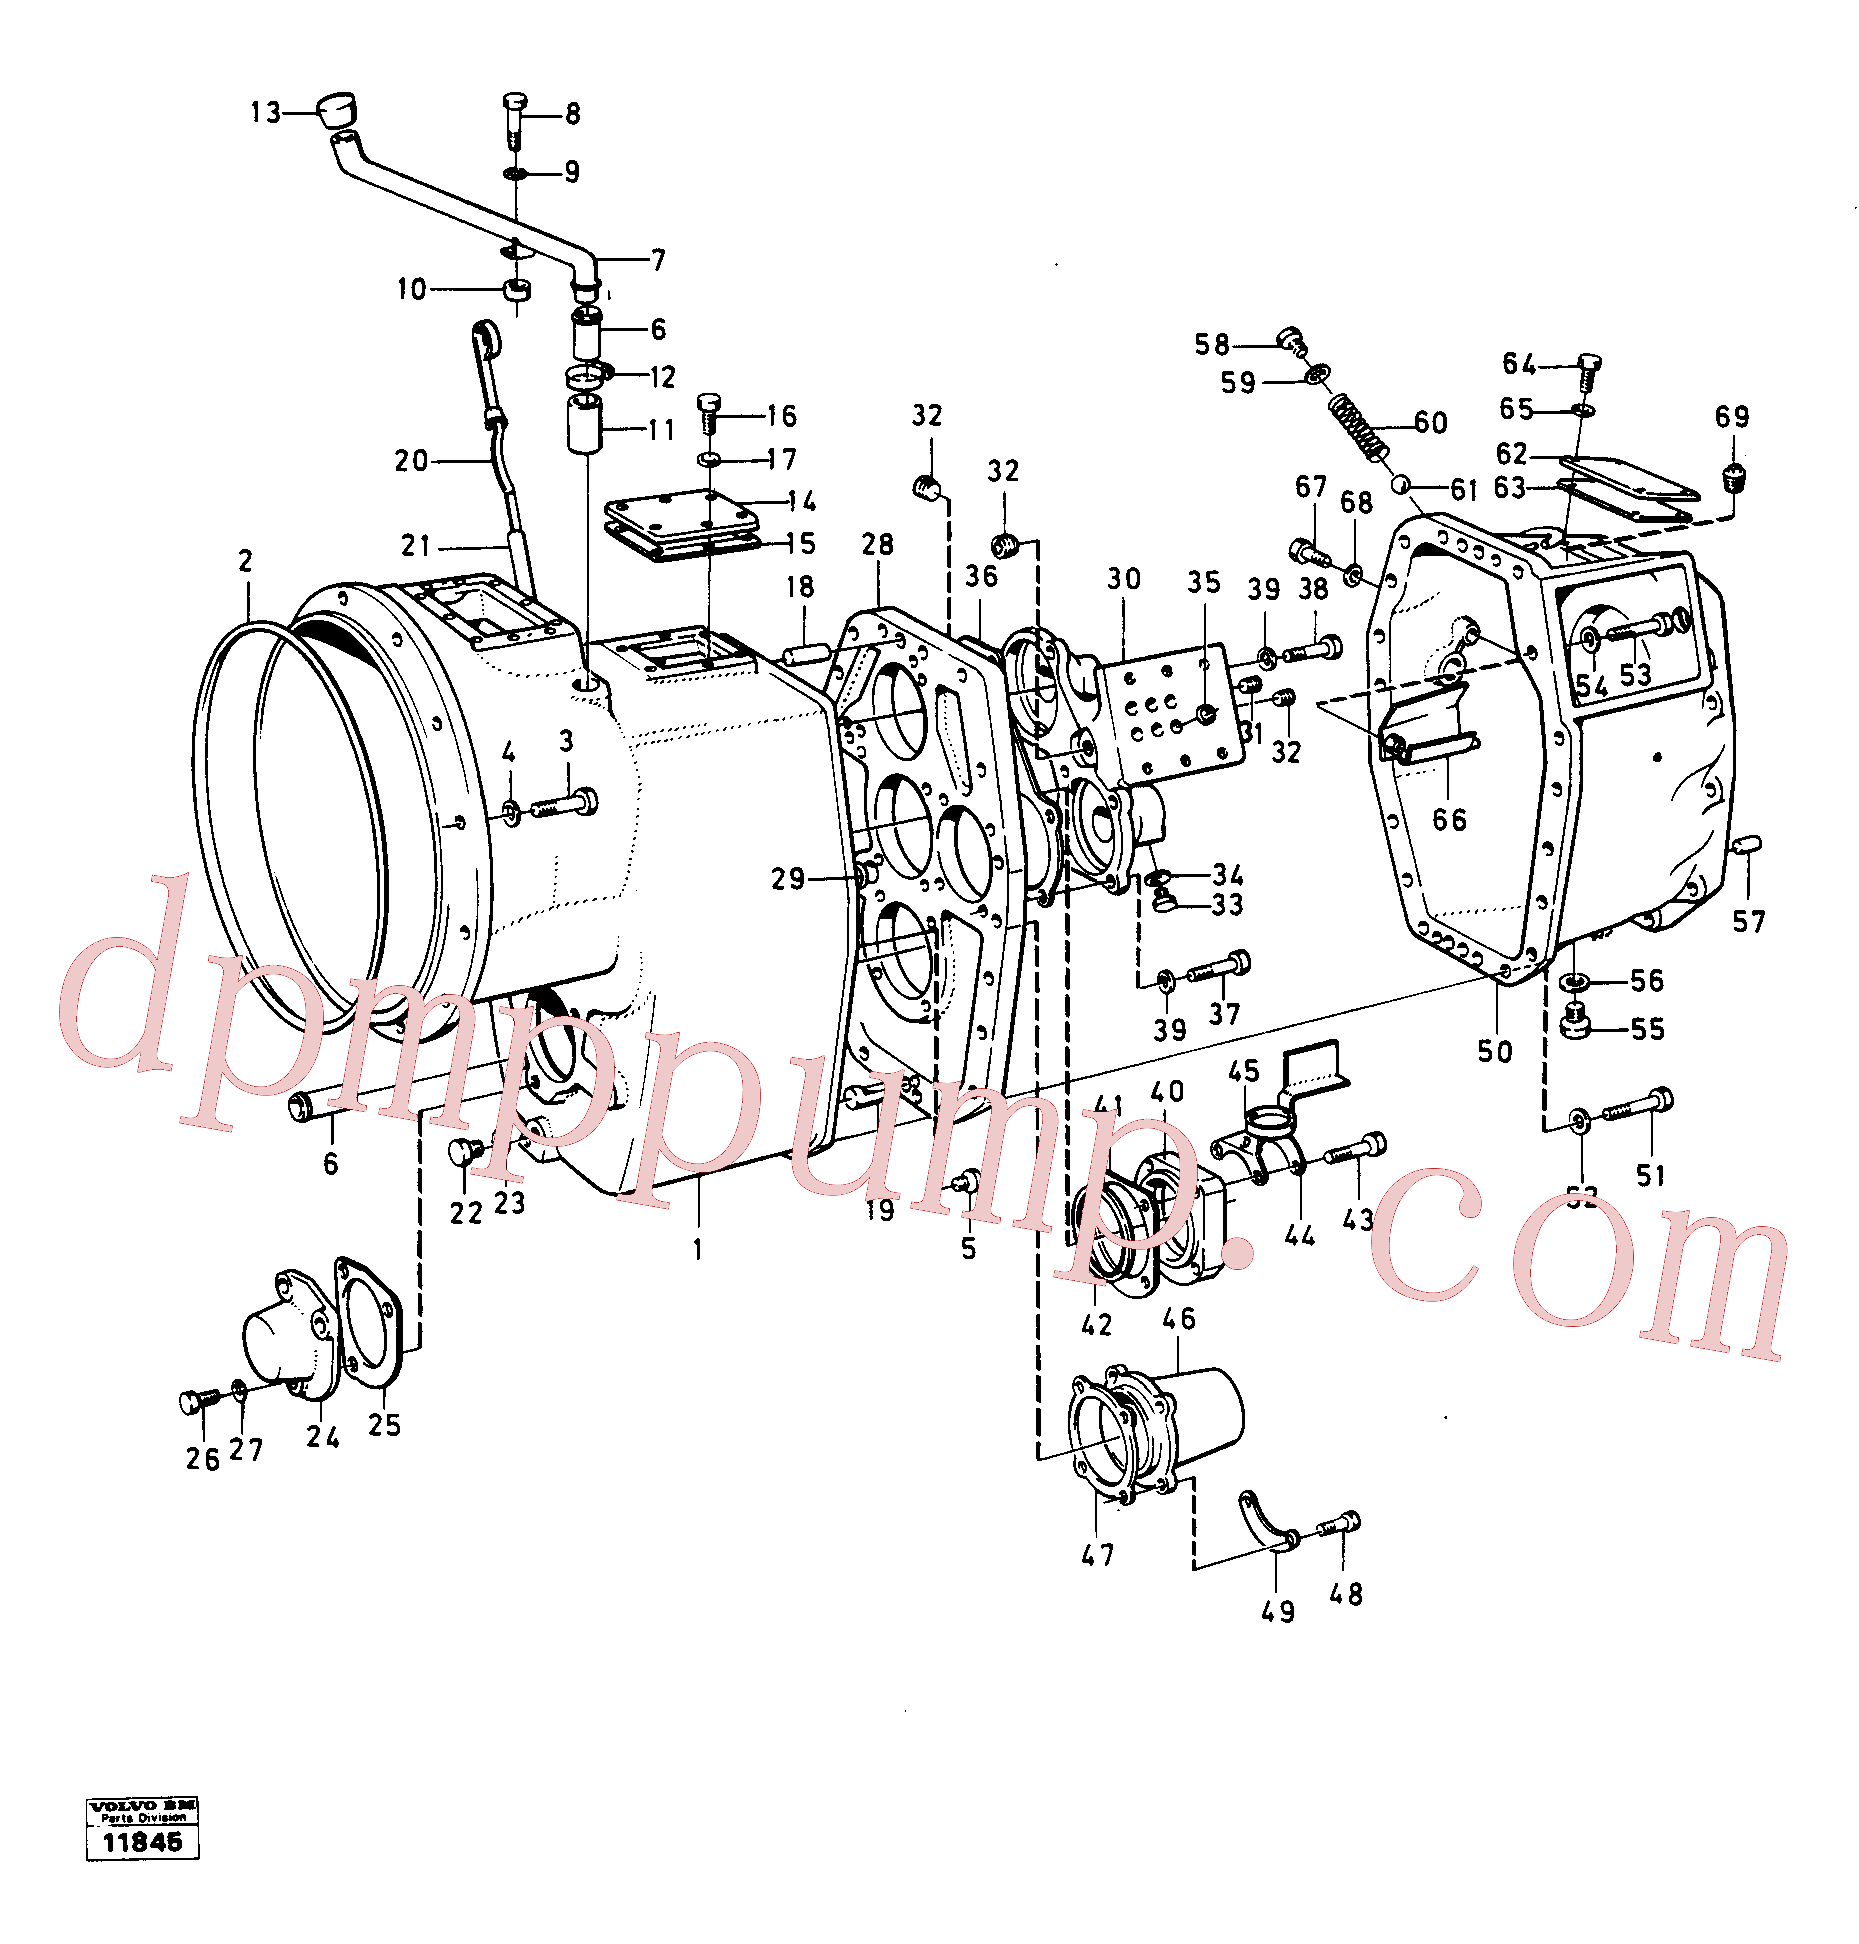 VOE955526 for Volvo Housing,covers and boltings(11845 assembly)